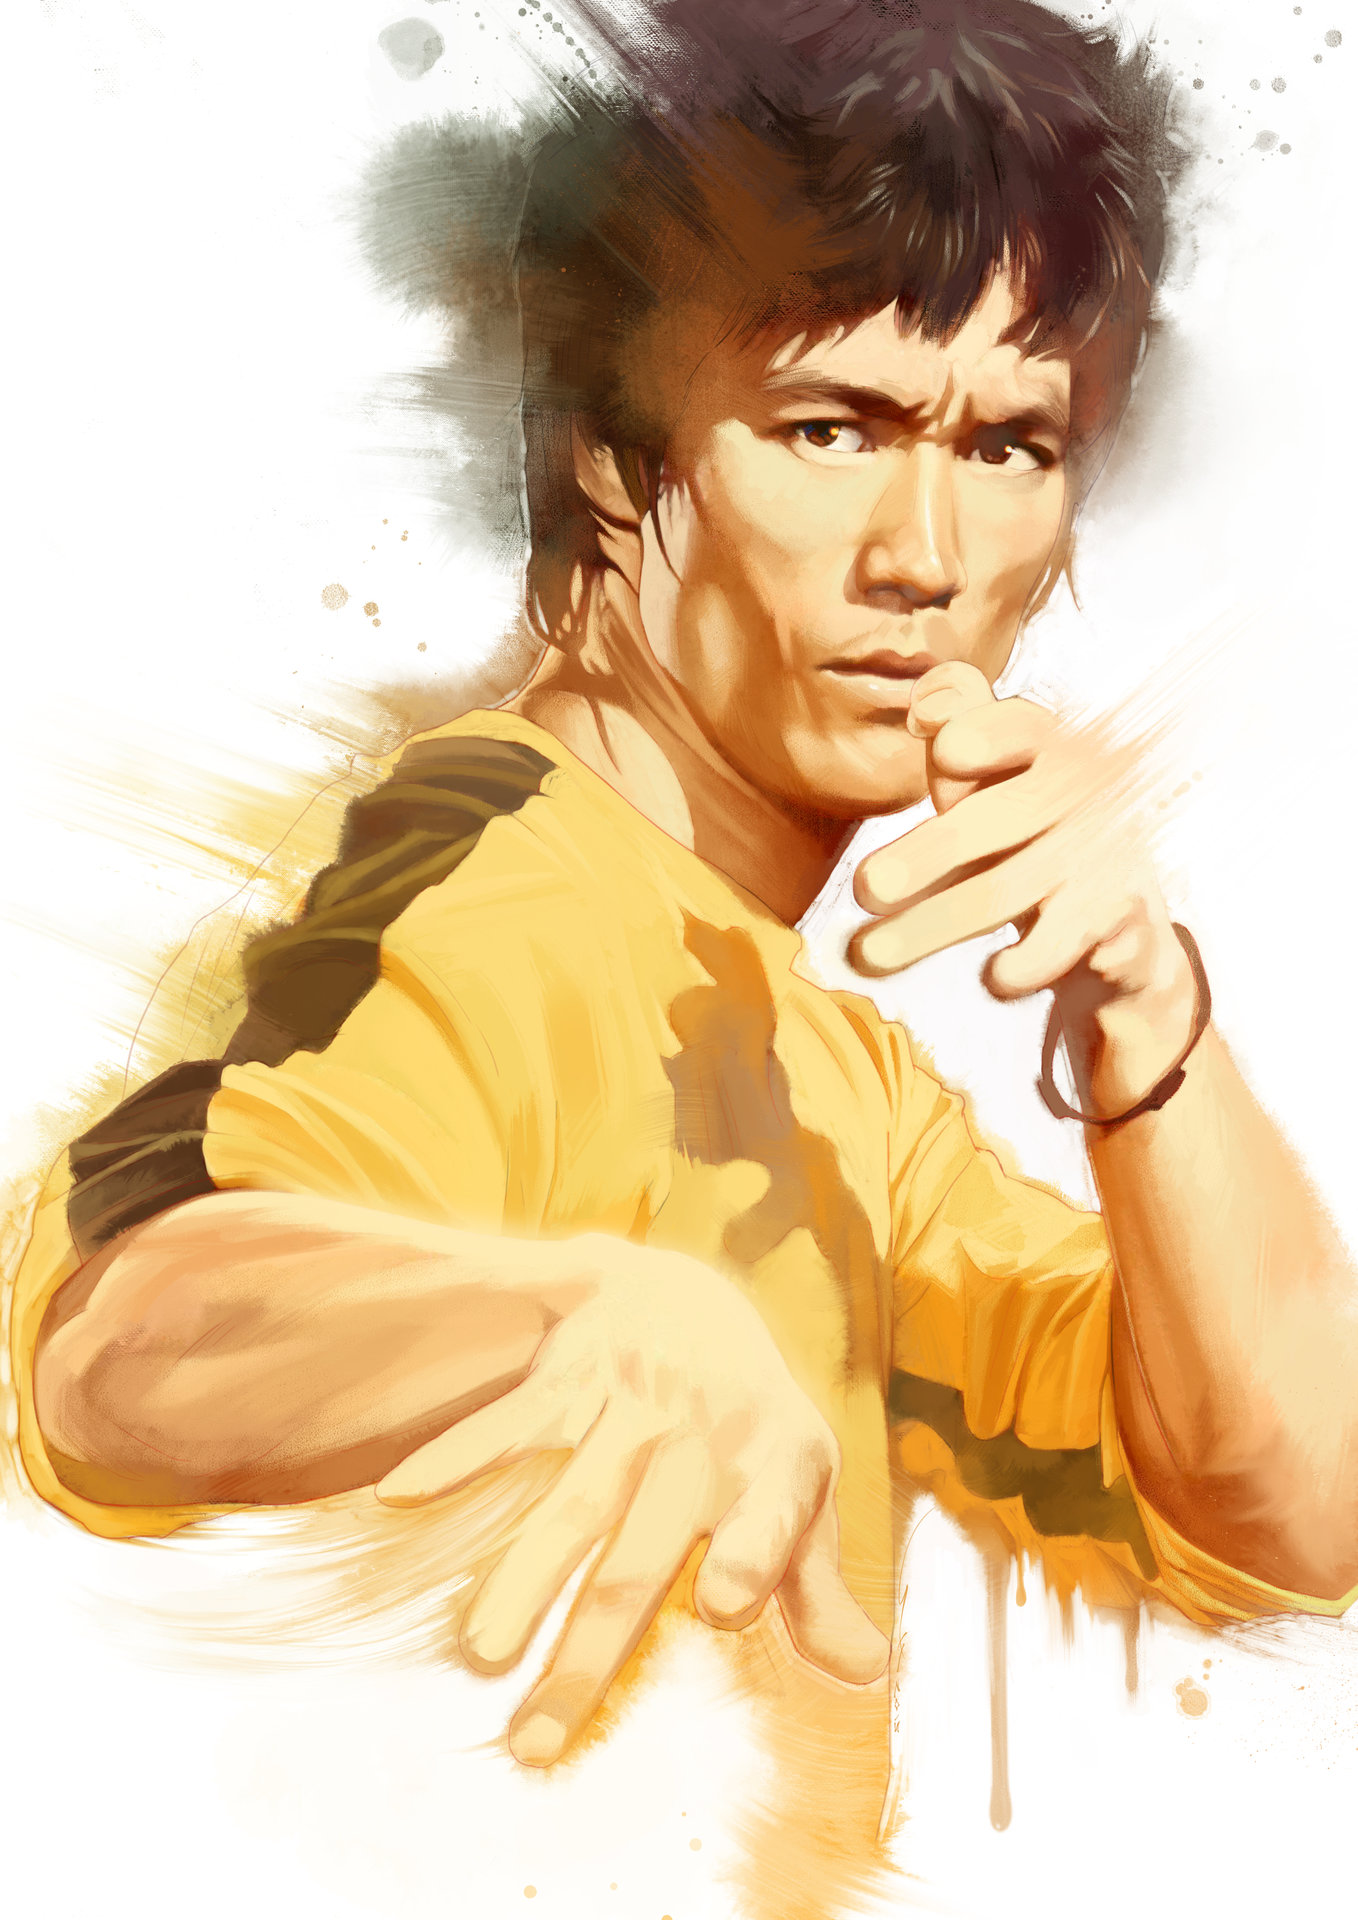 Singhooi lim bruce lee copy